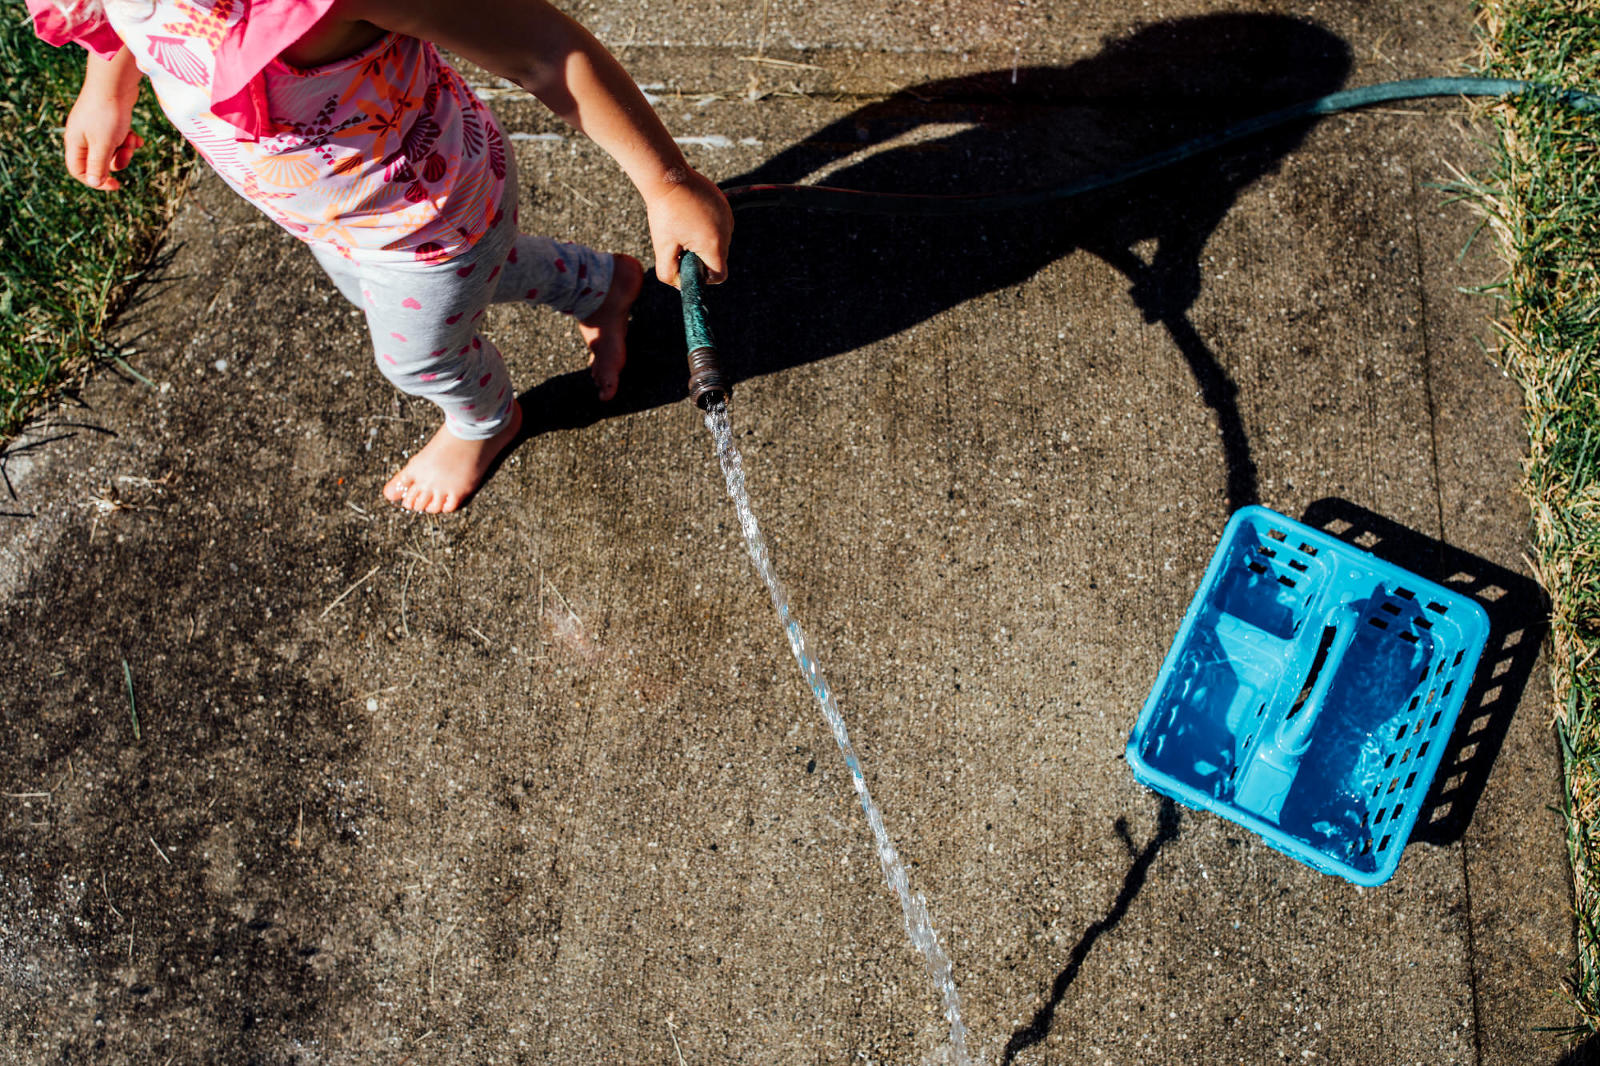 barefoot girl holds water hose in summer with shadow